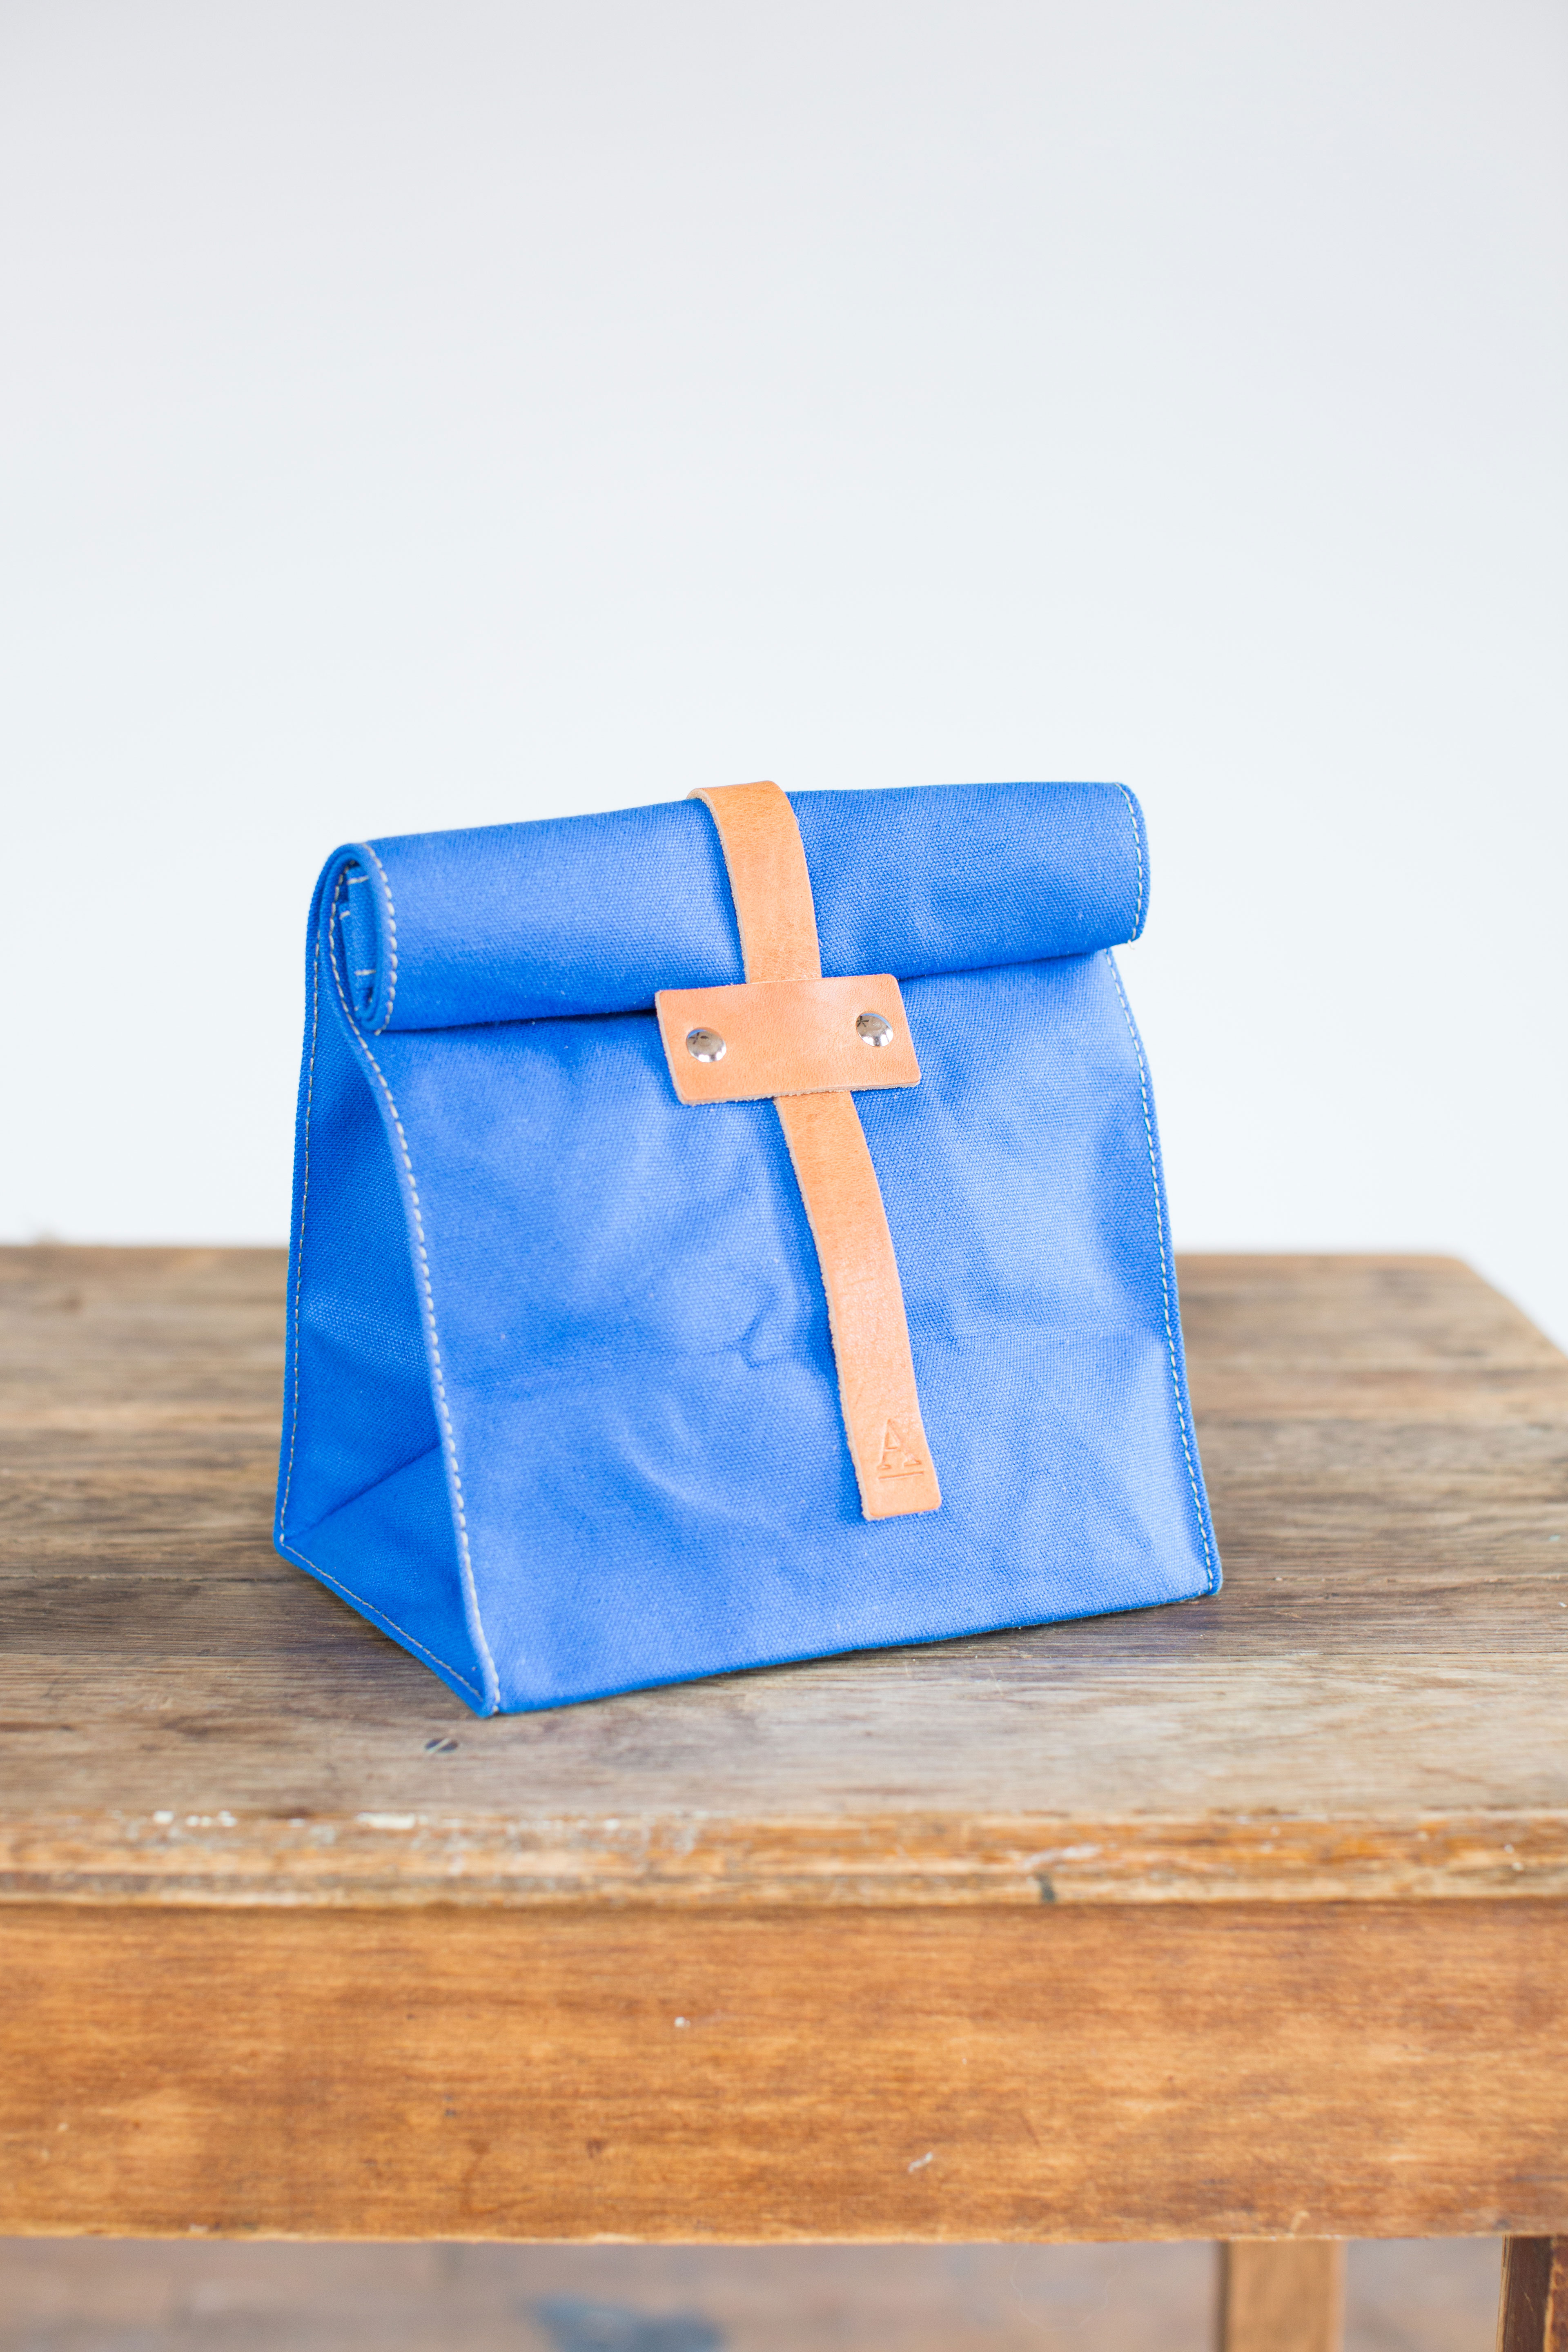 10 Stylish Lunch Bags